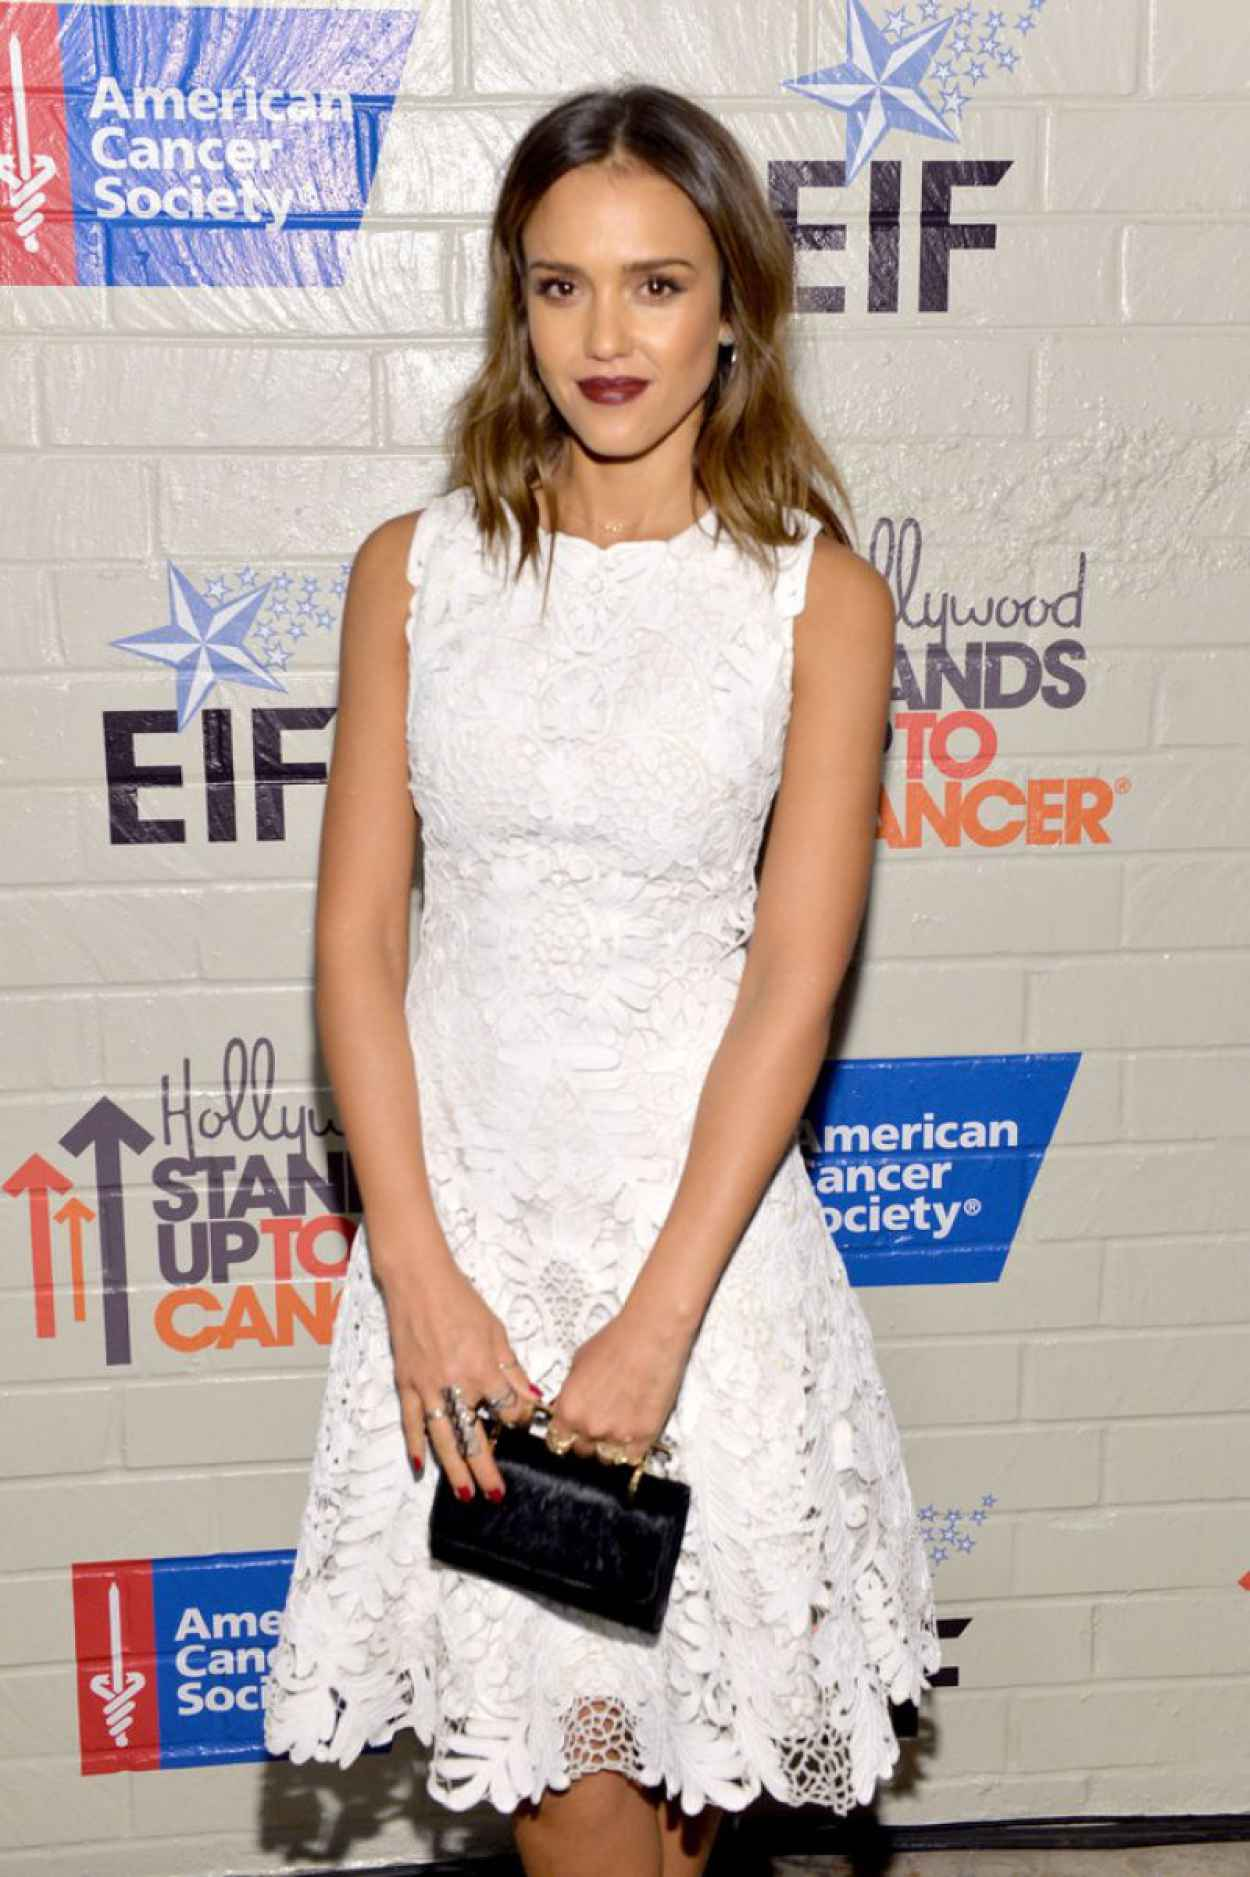 Jessica Alba - Hollywood Stands Up To Cancer Event (2014)-1